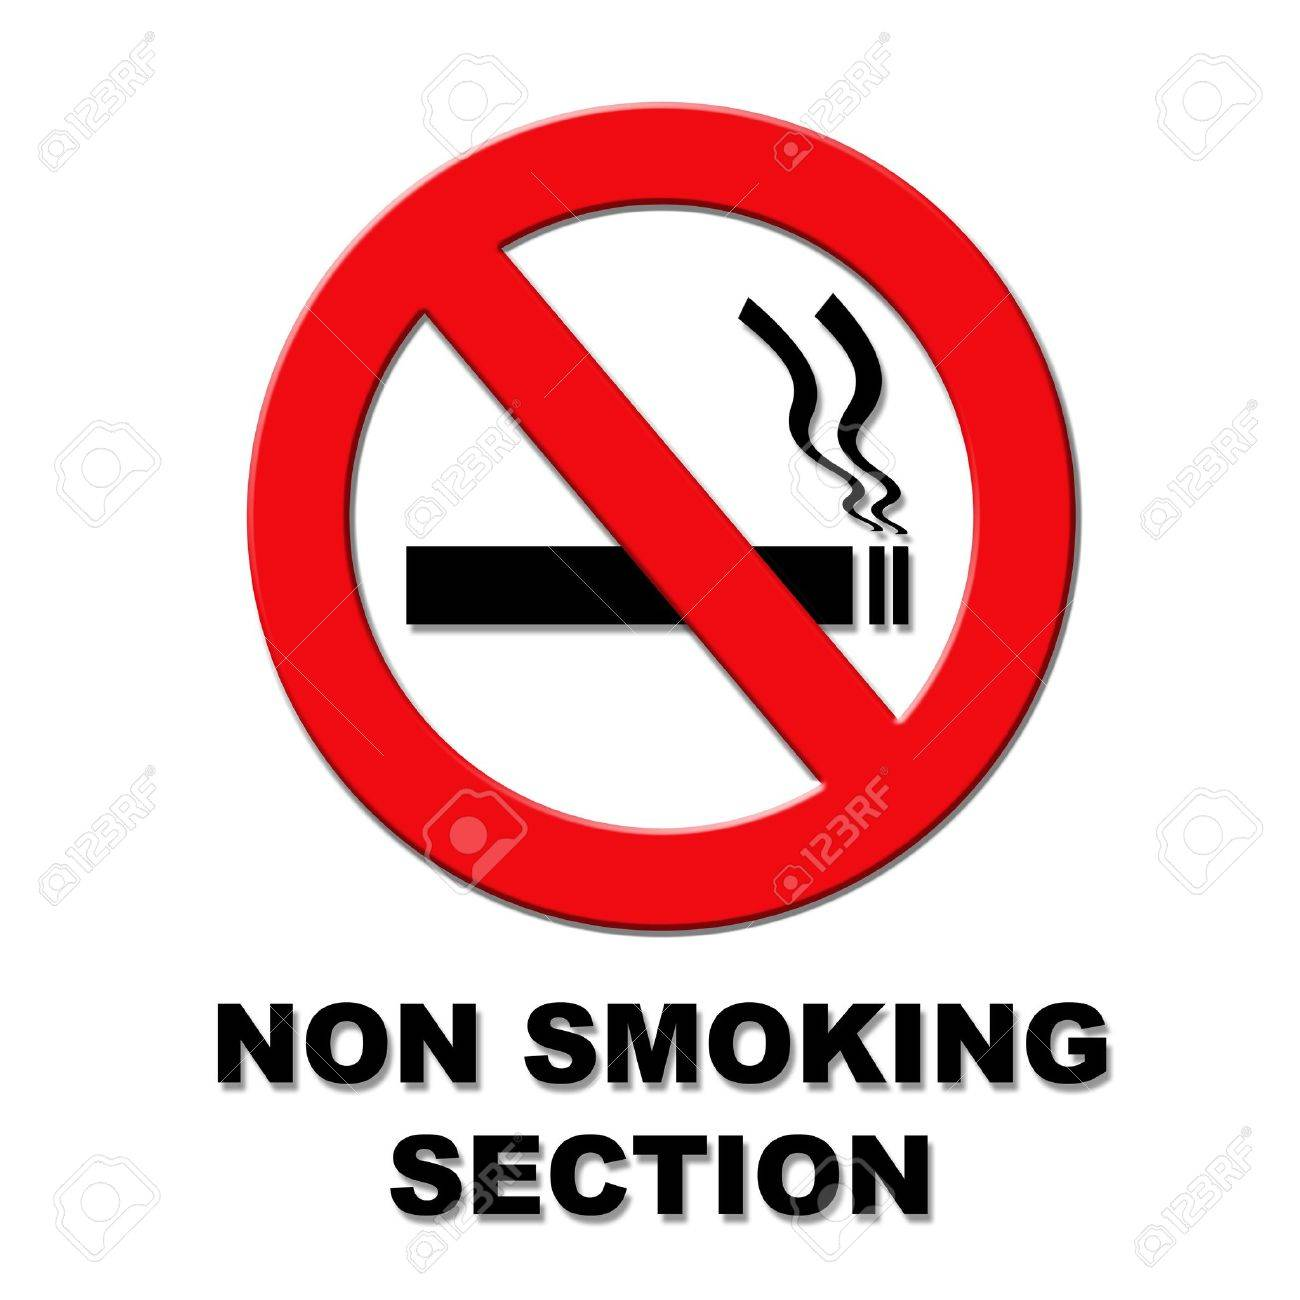 No smoking section red and black sign on white background stock no smoking section red and black sign on white background stock photo 12535031 buycottarizona Choice Image